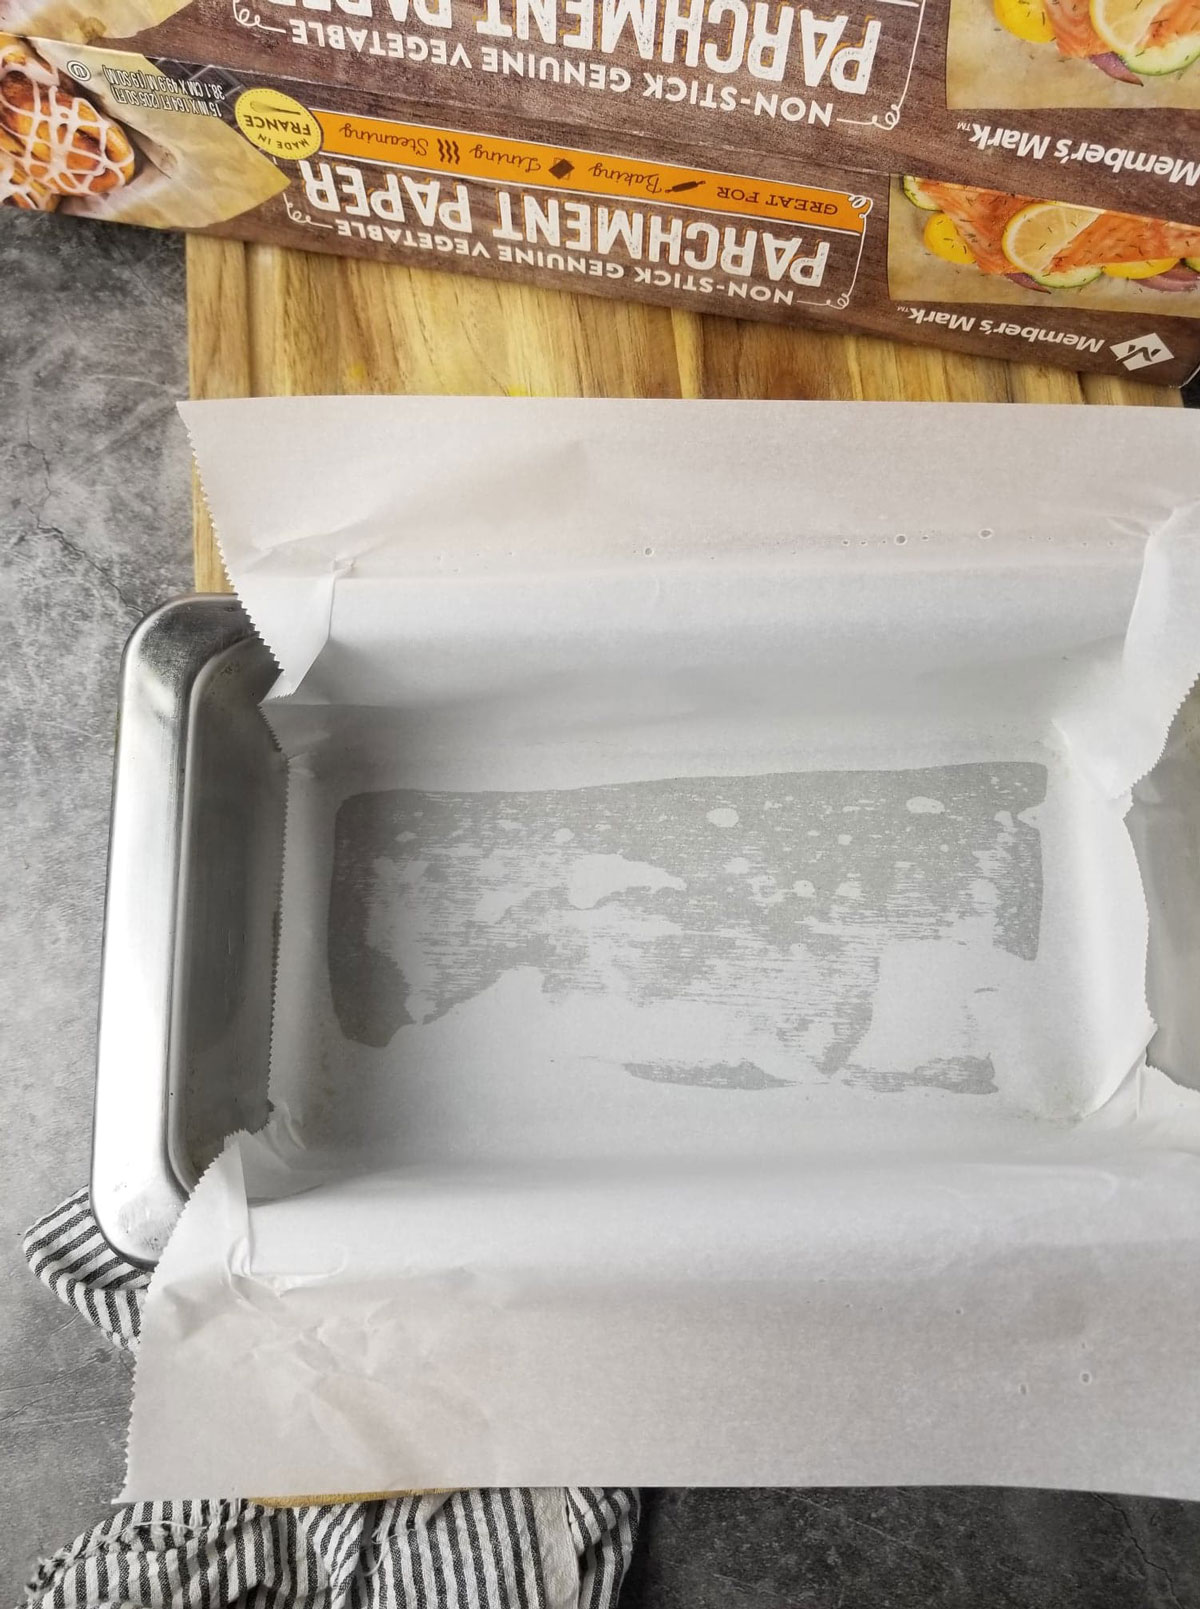 baking pan lined with parchment paper for making vegan pound cake